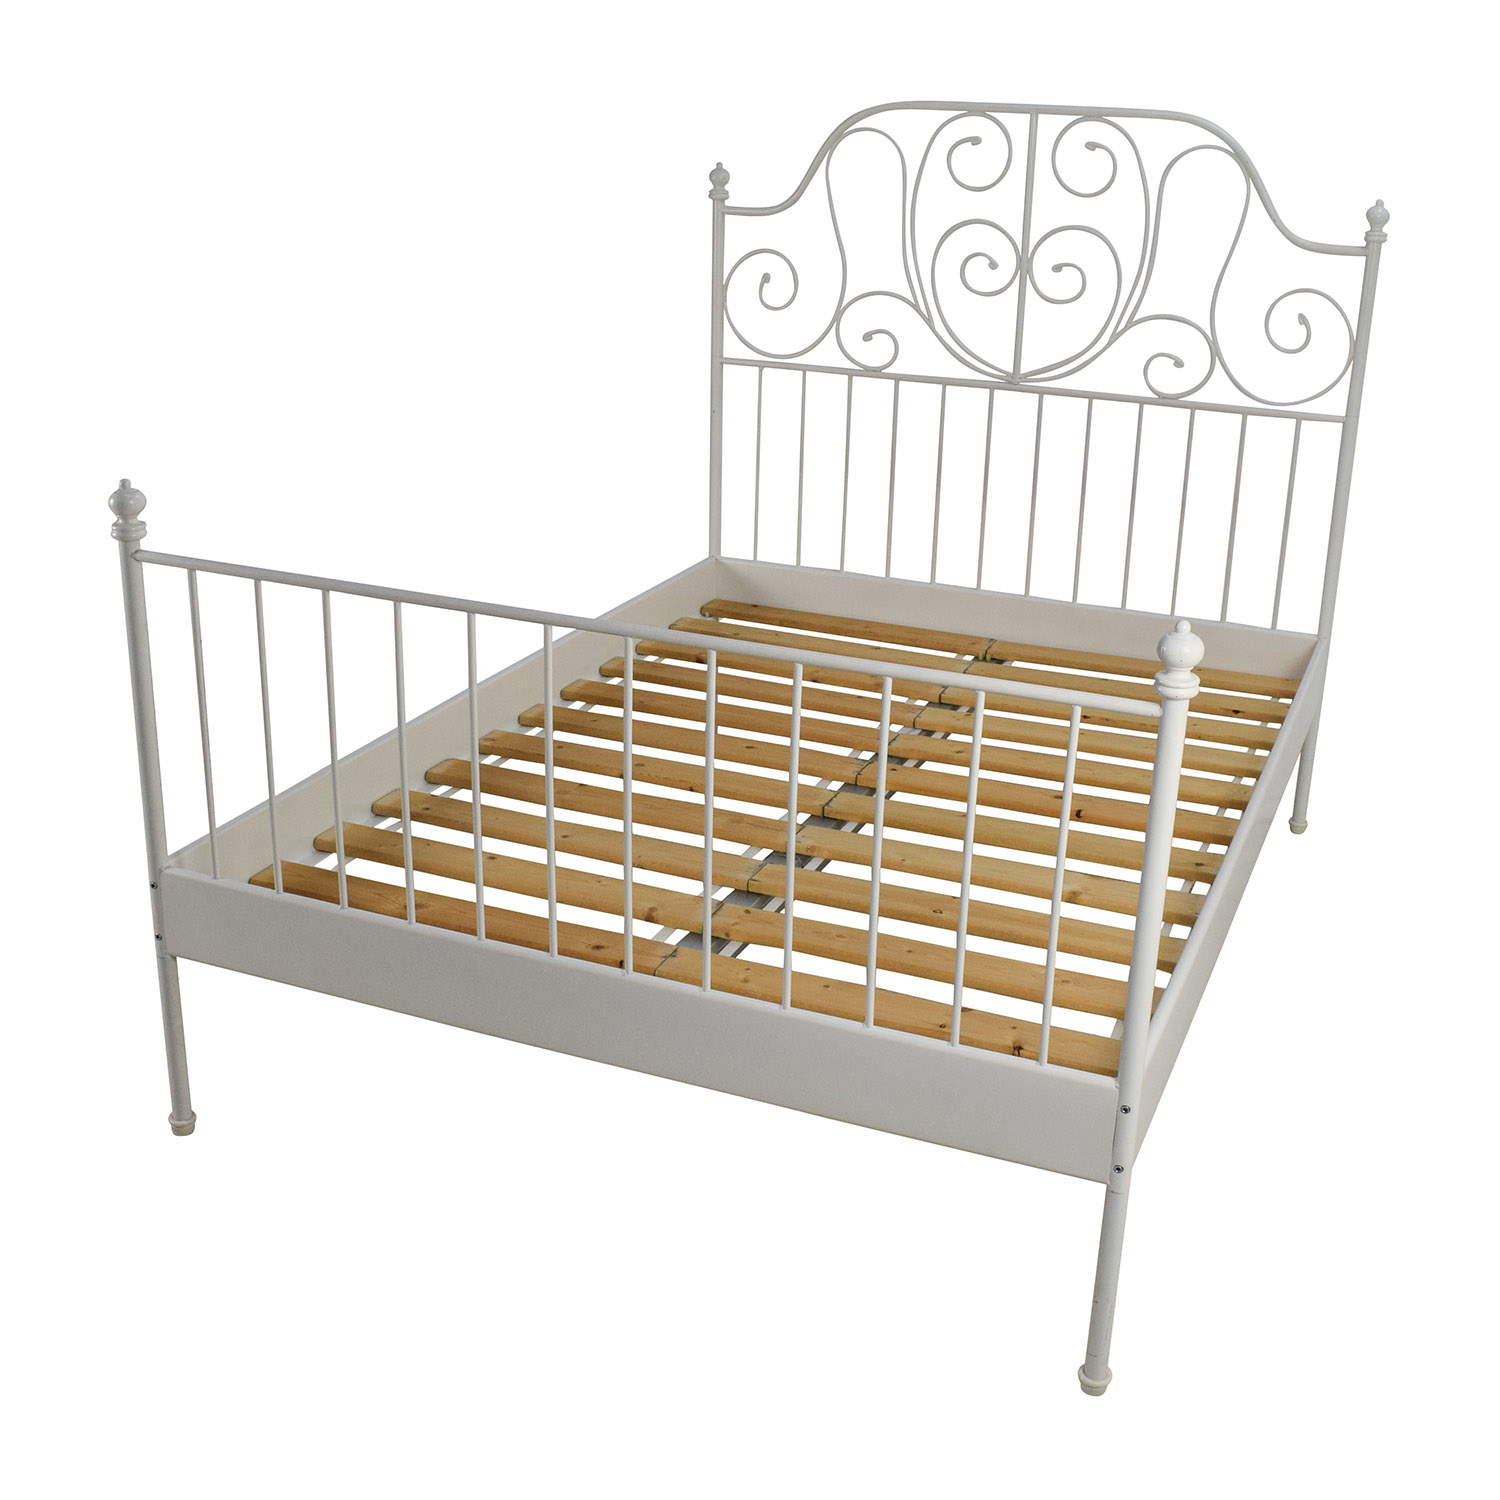 ikea leirvik bed frame review ikea bedroom product reviews. Black Bedroom Furniture Sets. Home Design Ideas